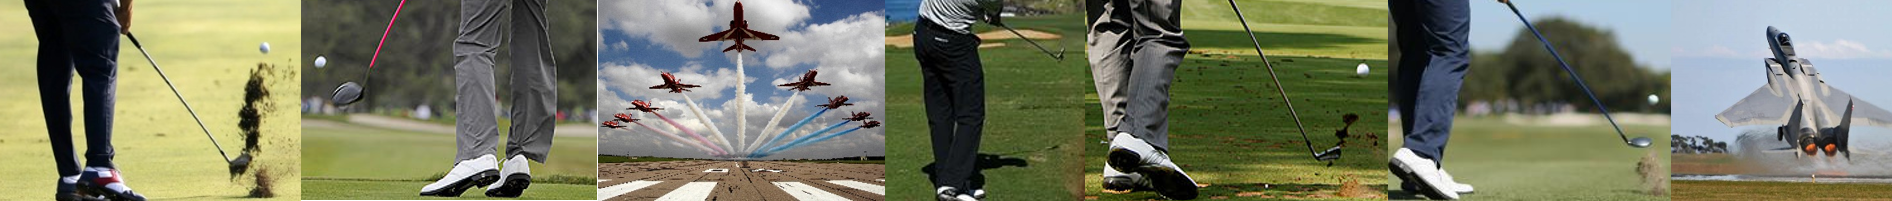 PLANE TRUTH GOLF, JIM HARDY, CHRIS O'CONNELL, PLUS AND MINUS, STEEP/SHALLOW, NARROW/WIDE